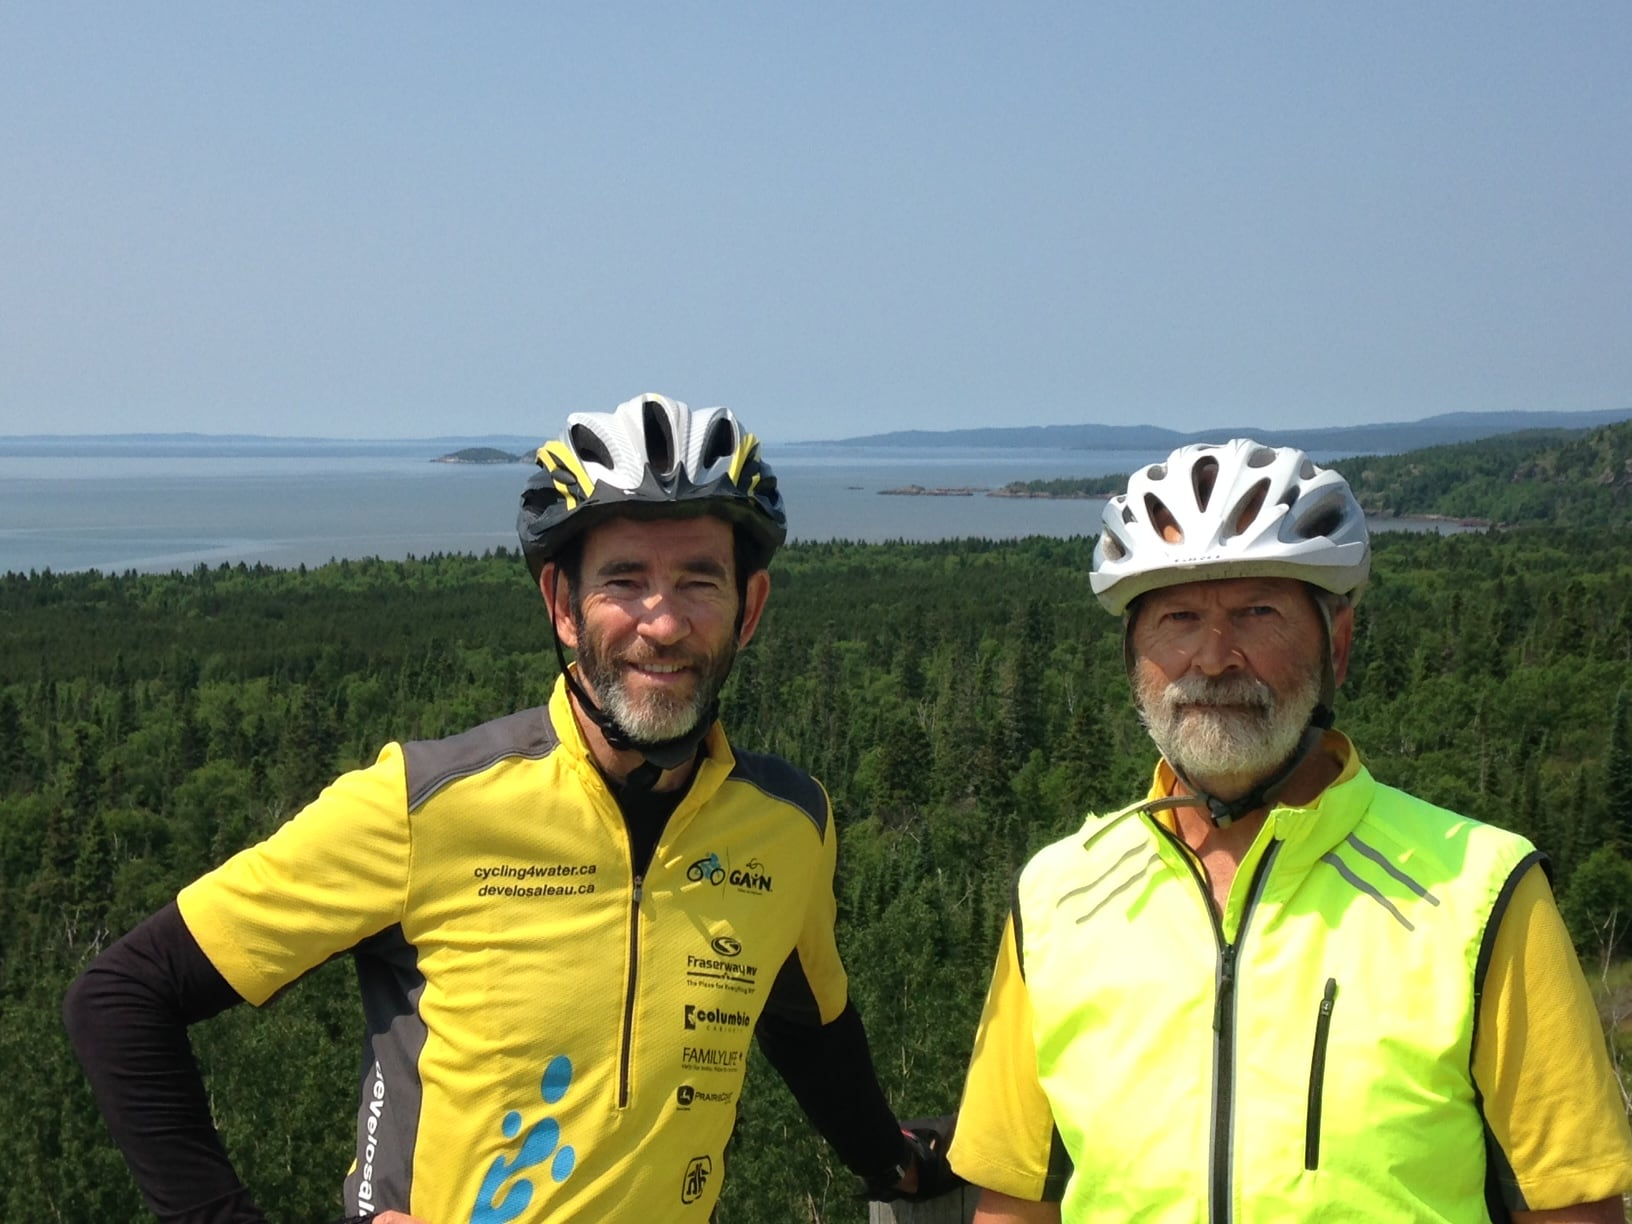 Day 24: Ross Port to White River, Ontario 207 km